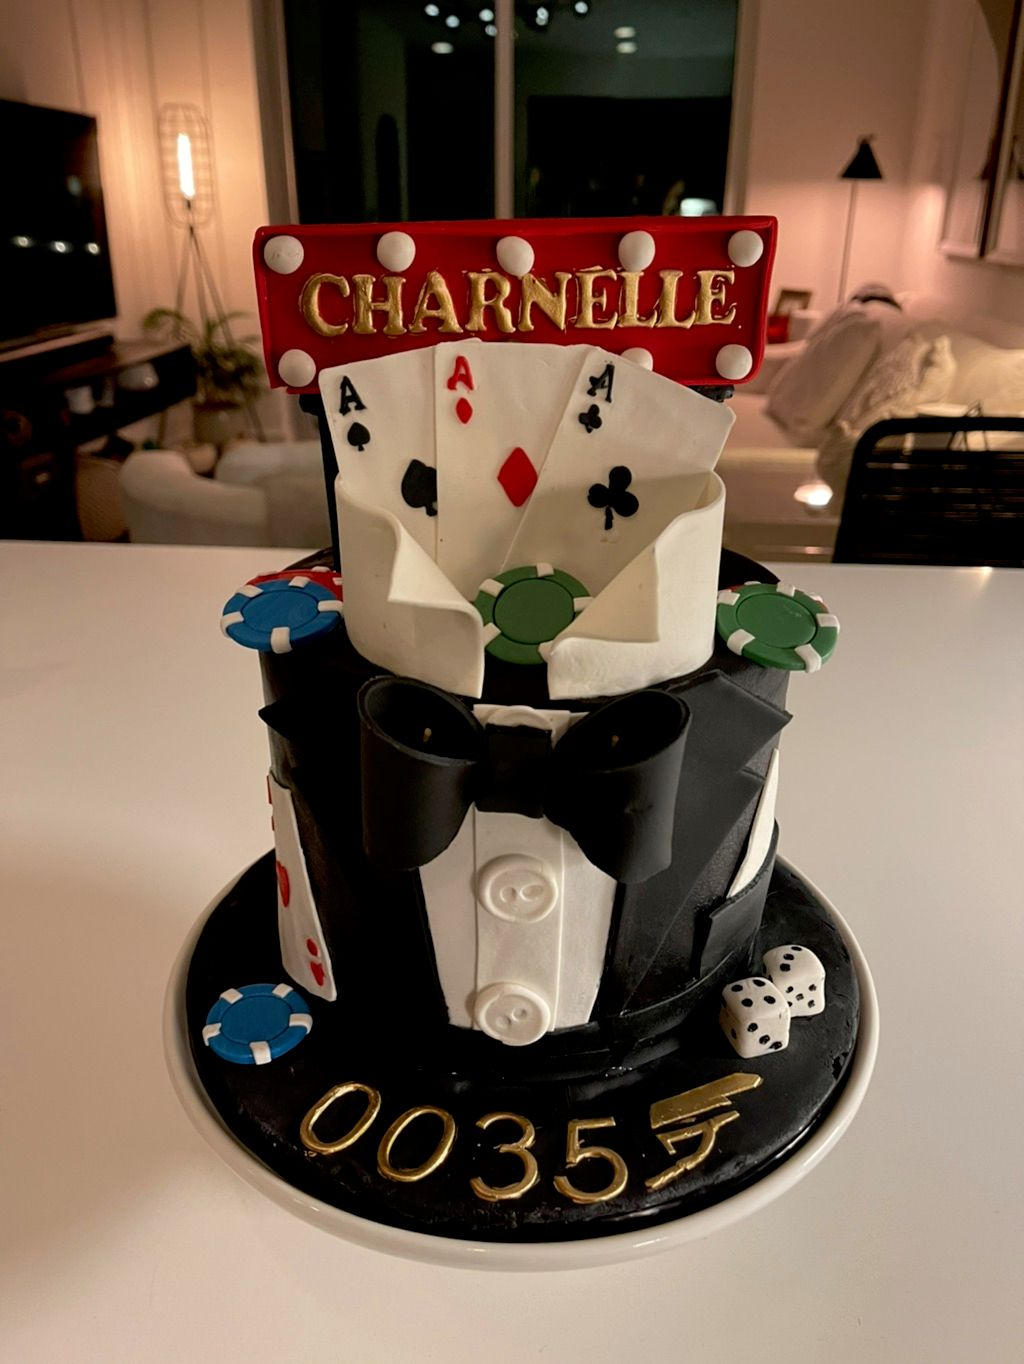 Casino Themed Birthday Cake - Atlanta 2020